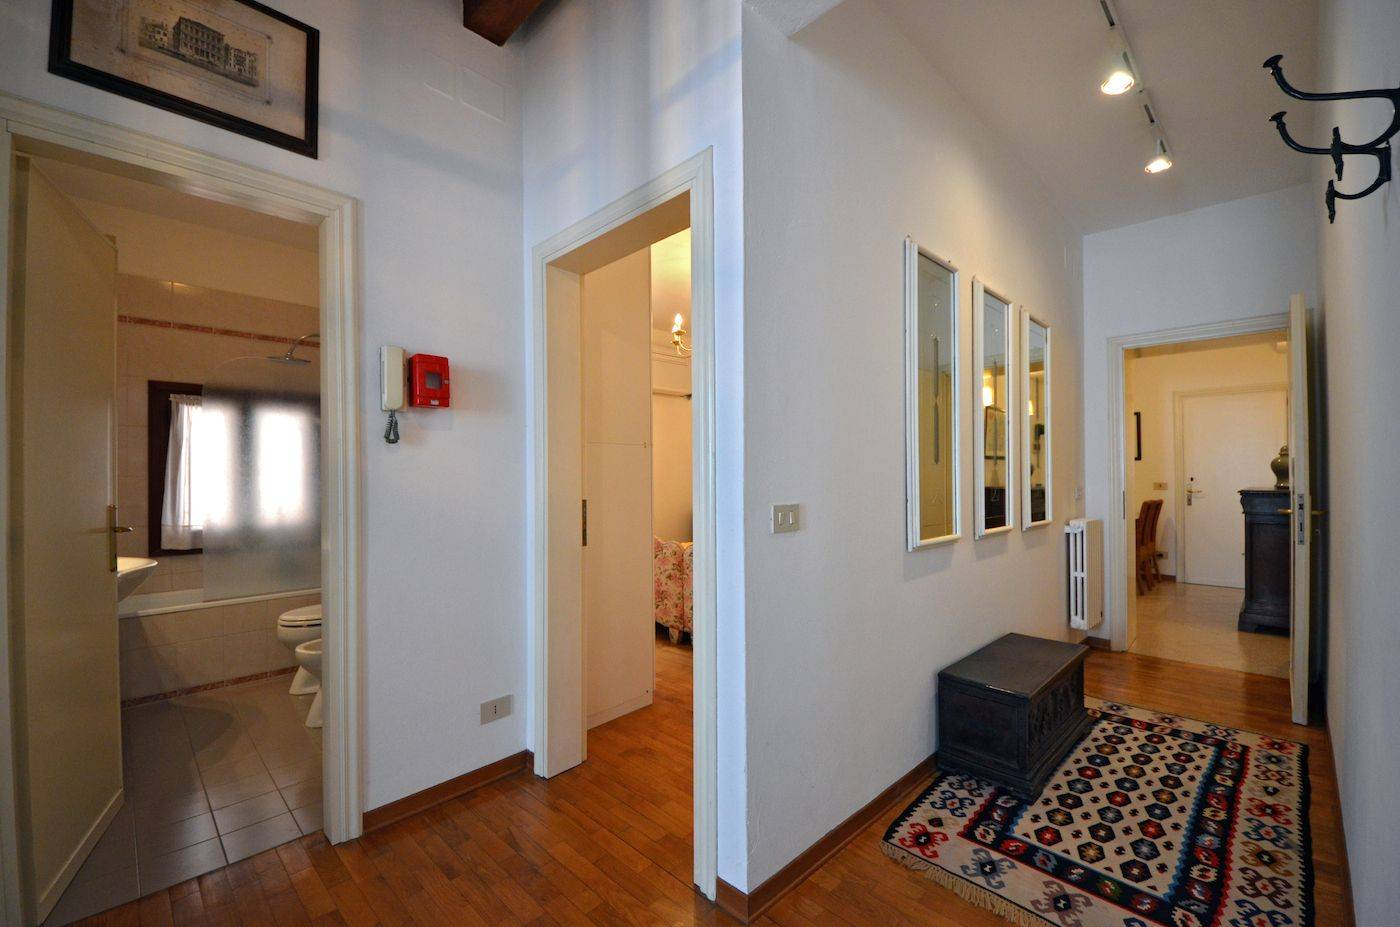 corridor that connects the entrance room with the kitchen